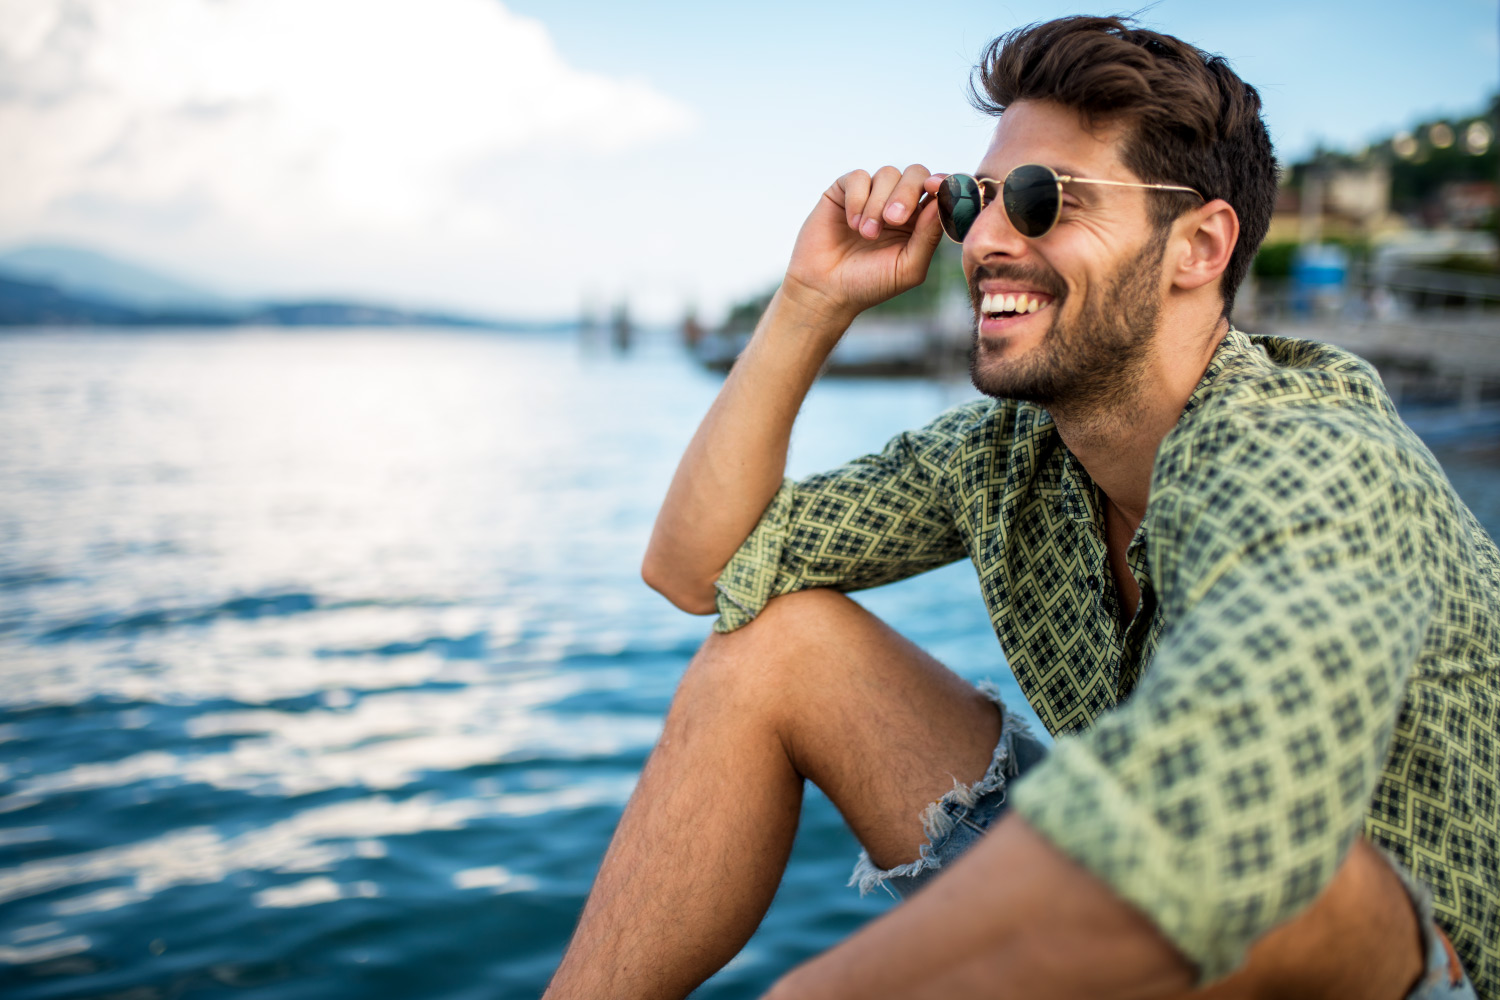 Brunette man wearing a green shirt and sunglasses smiles by a lake with healthier gums in Denver, CO